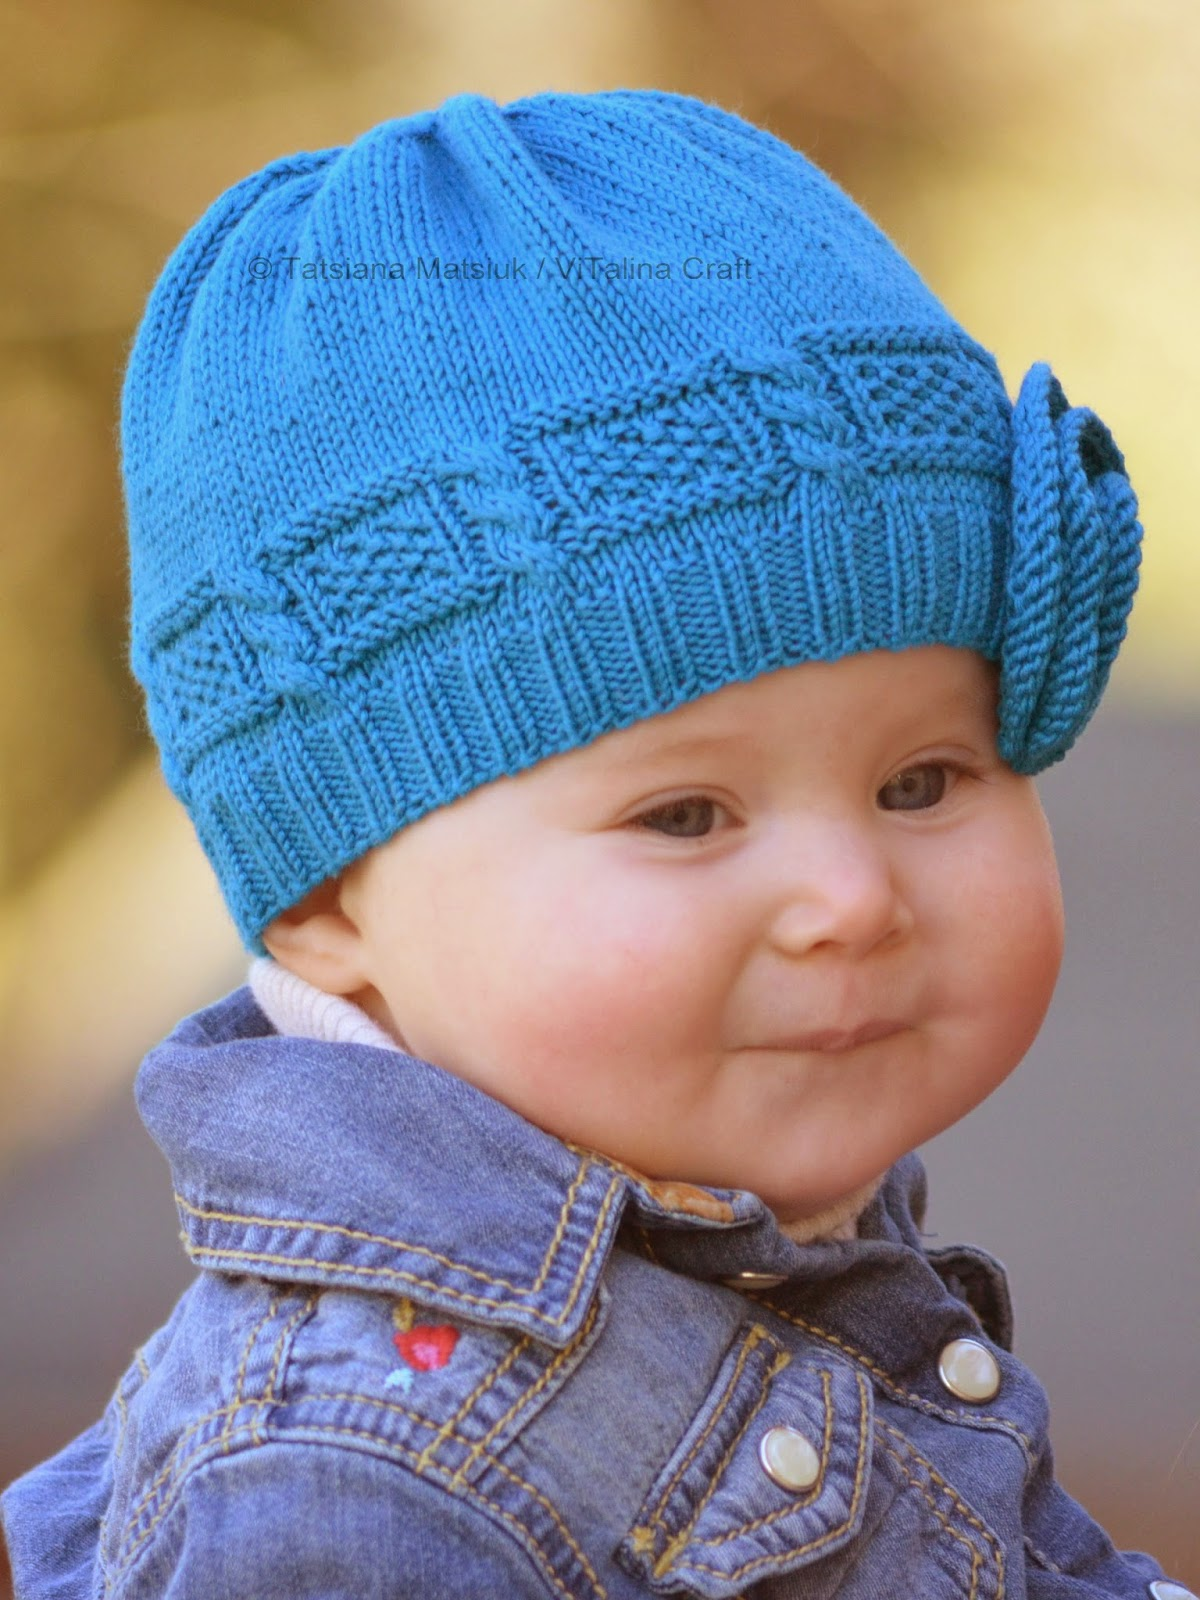 Azure Twist Flower Baby Hat Knitting Pattern | ViTalina Craft